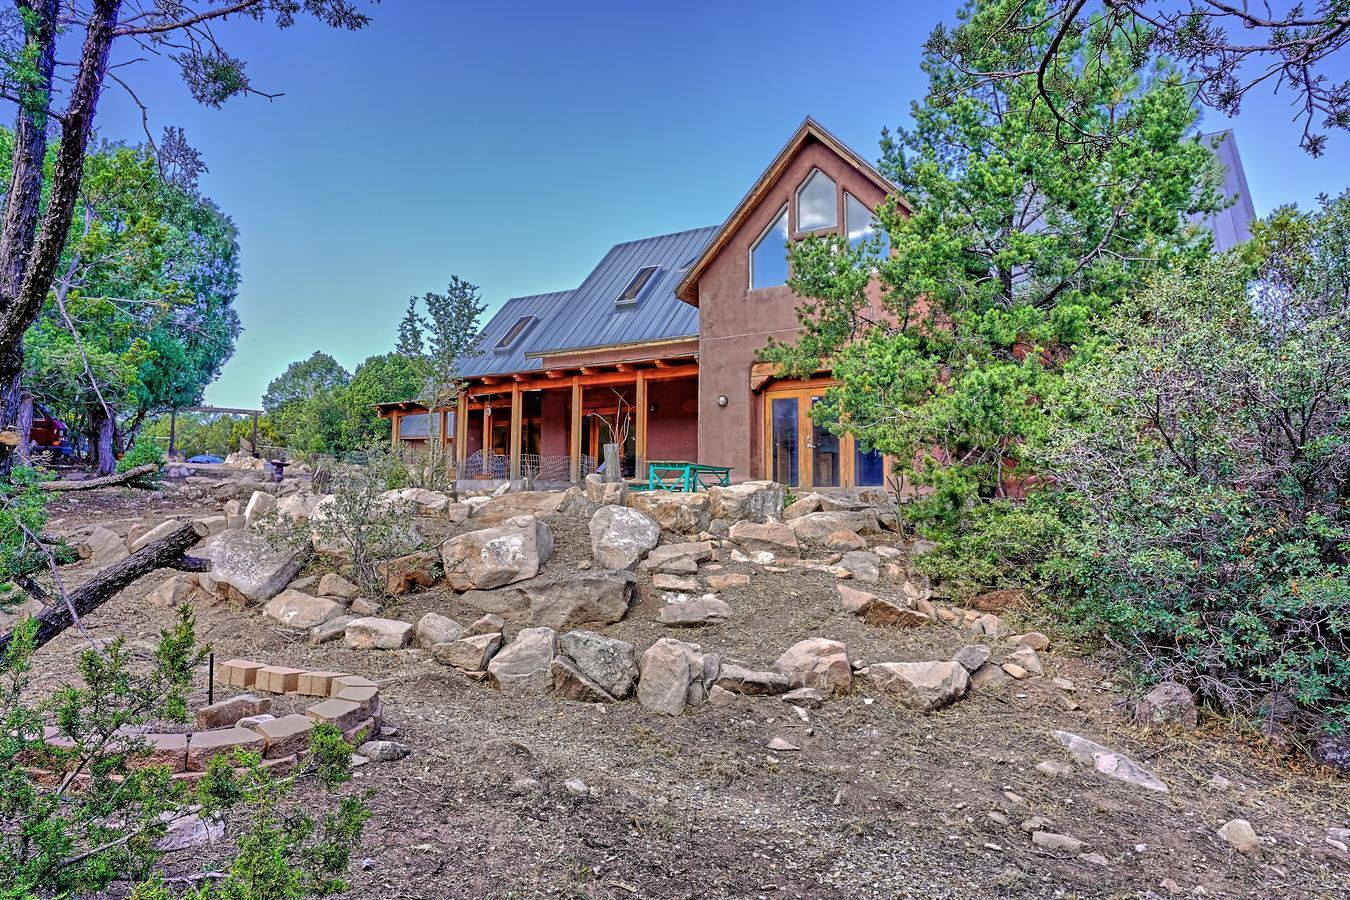 Mountain home with so much character!  Gorgeous exposed wood beam ceilings throughout, Saltillo and wood flooring! Beautifully remodeled kitchen! Gorgeous cherry wood cabinets, top of the line Thermador appliances! 5 cook top burner, steam convention oven, wine cooler, under-mount sinks, and beautiful granite countertops! Wood windows throughout, walk in pantry, huge mud/laundry room with in floor mud ''catcher'' Spectacular 2nd level loft (HUGE), open and lots of natural light!  4th bedroom upstairs with additional bath!Wooded and private lot!  Completely fenced in! Horse corral with tack/hay barn, chicken coop, and dog house/run area!  Detached 756 sq.ft  heated/cooled  studio/office, included in overall sq.ft. (plumbing started for bath),  2 car garage w/workspace & so much more